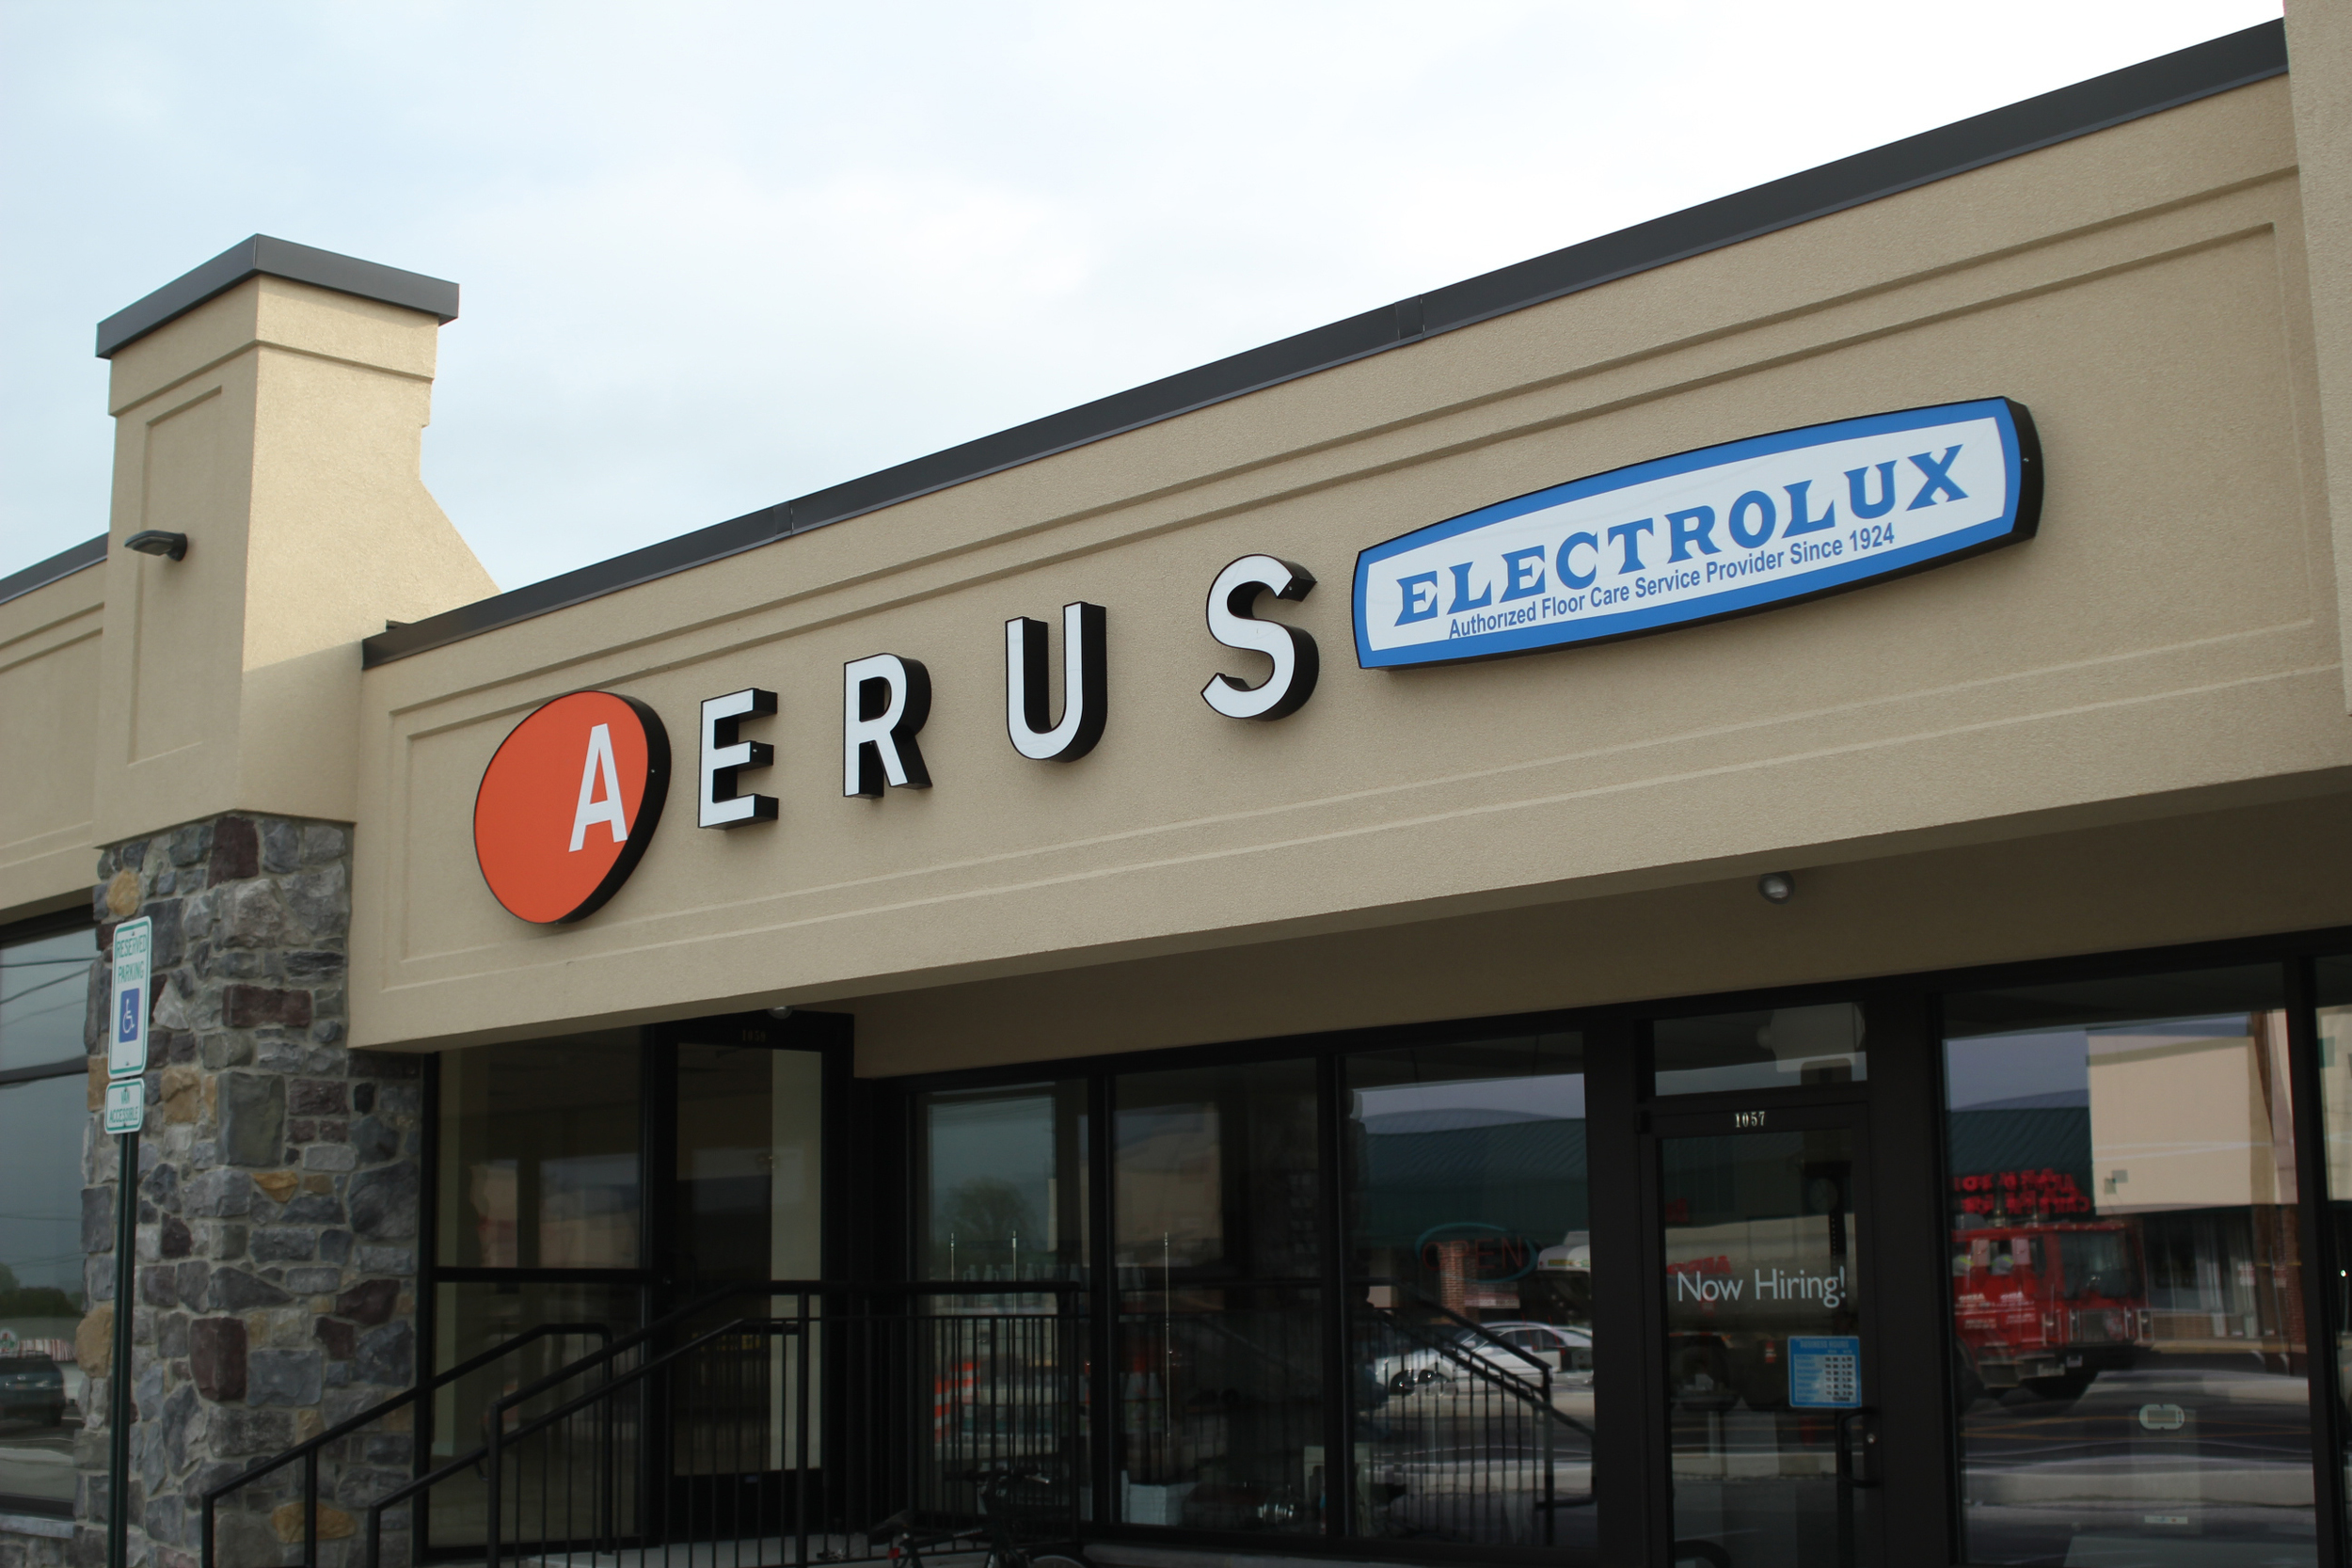 Signs | Aerus Electrolux Sign | Hanover, PA